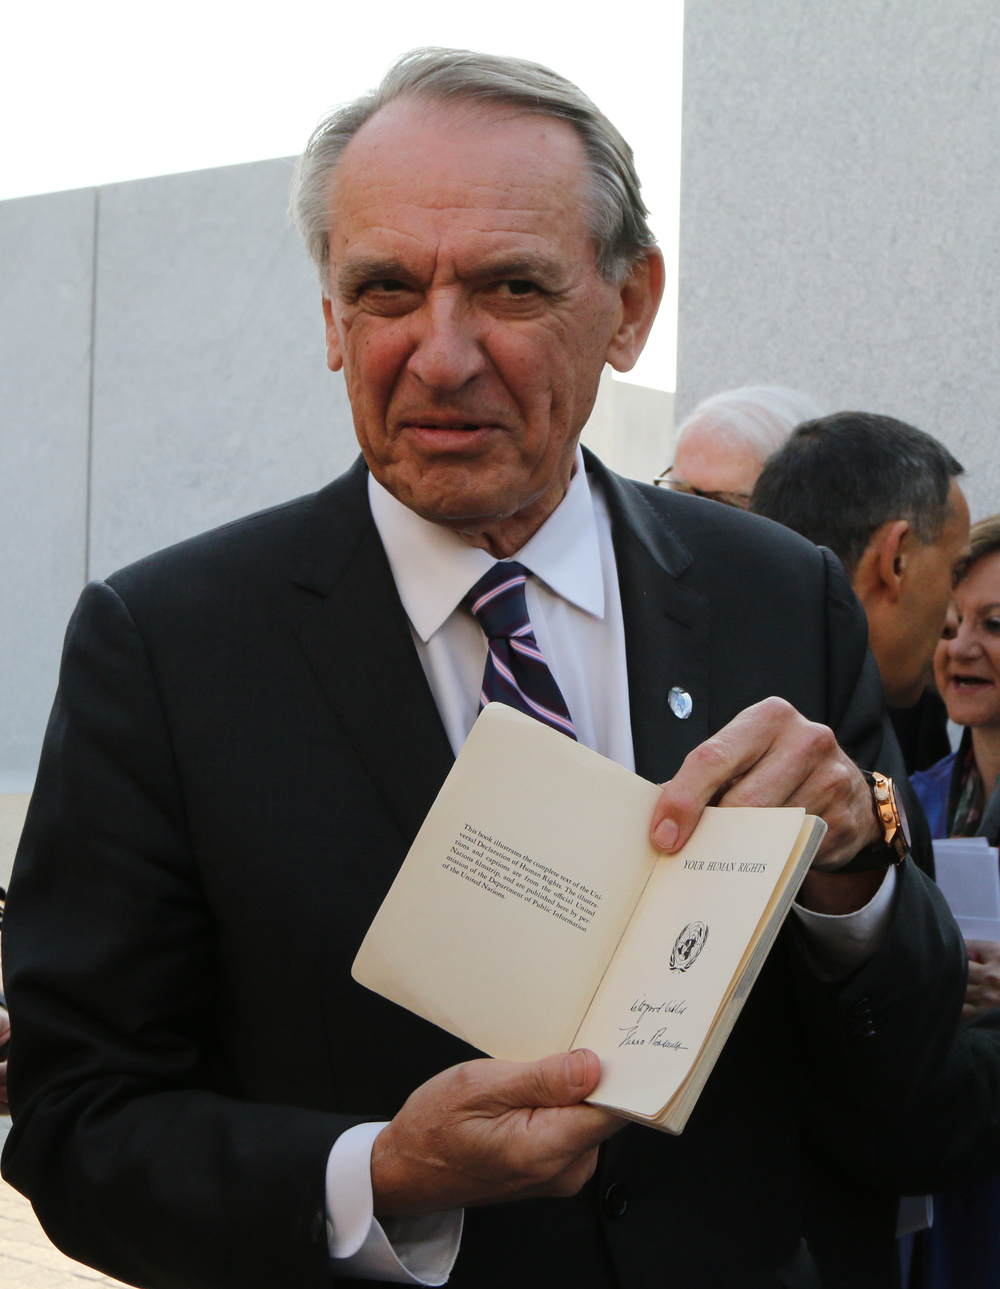 Jan Eliasson shows a booklet signed by Eleanor Roosevelt containing the Declaration of Human Rights